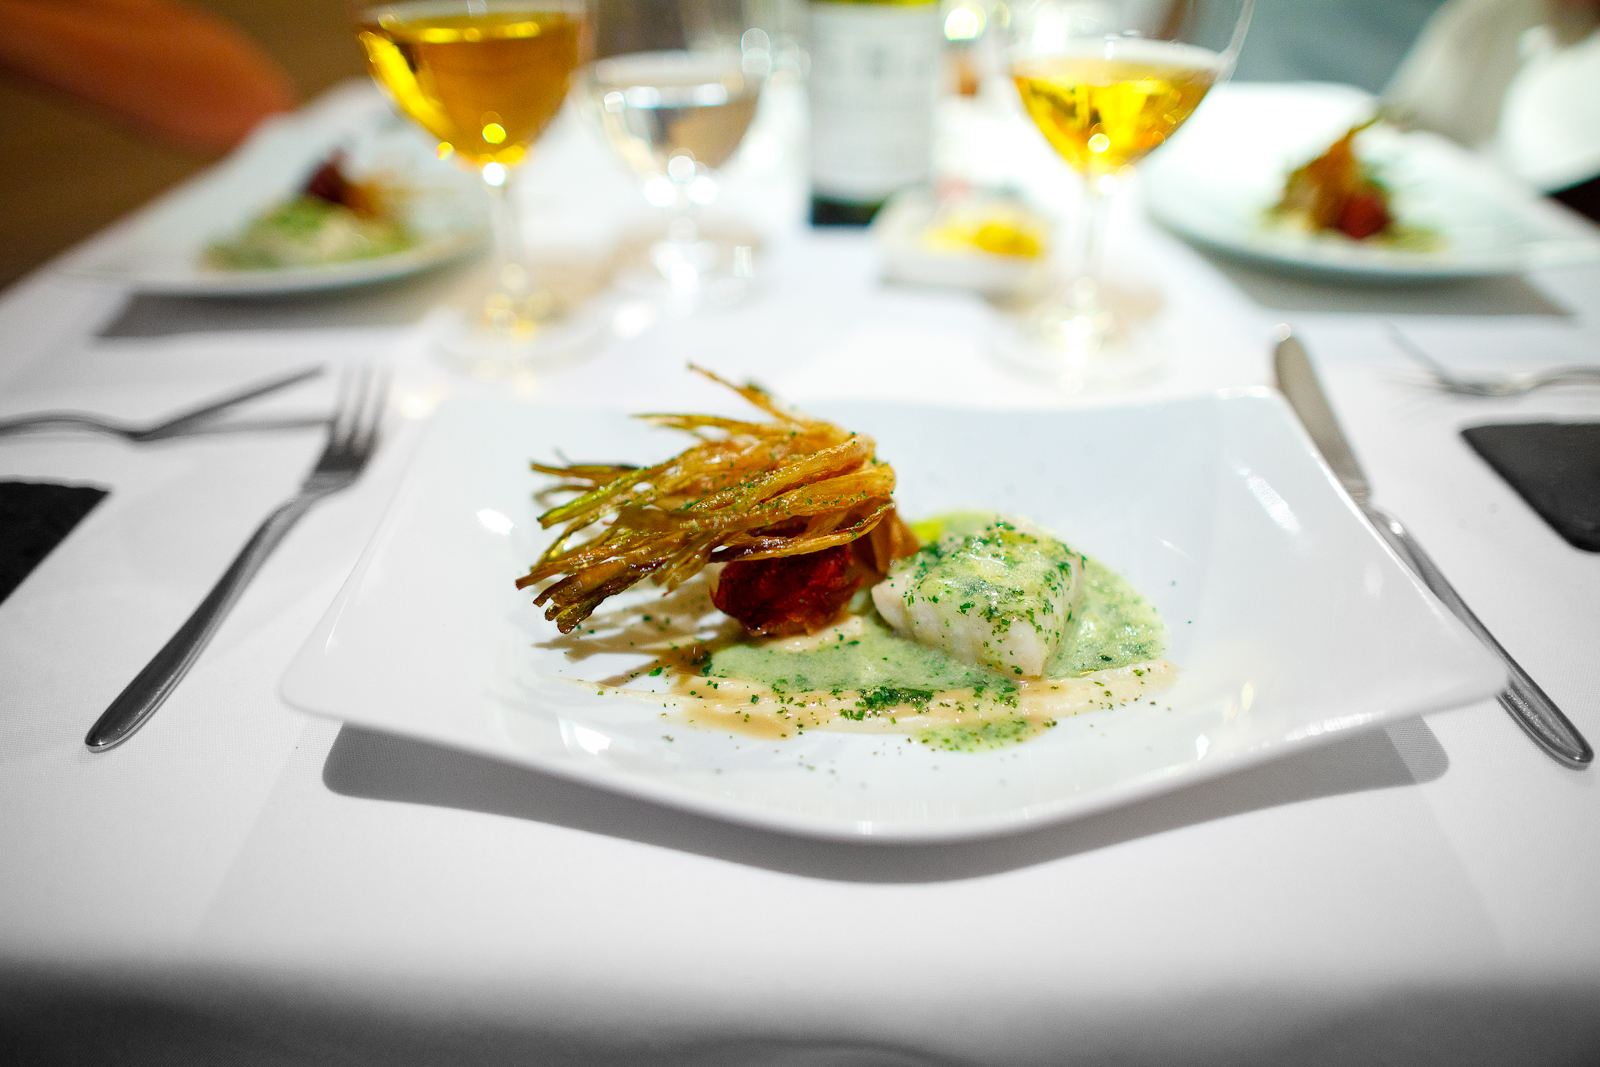 6th Course: Pescado del día con flor de alcachofa (fish of the day with artichoke blossom, sauced